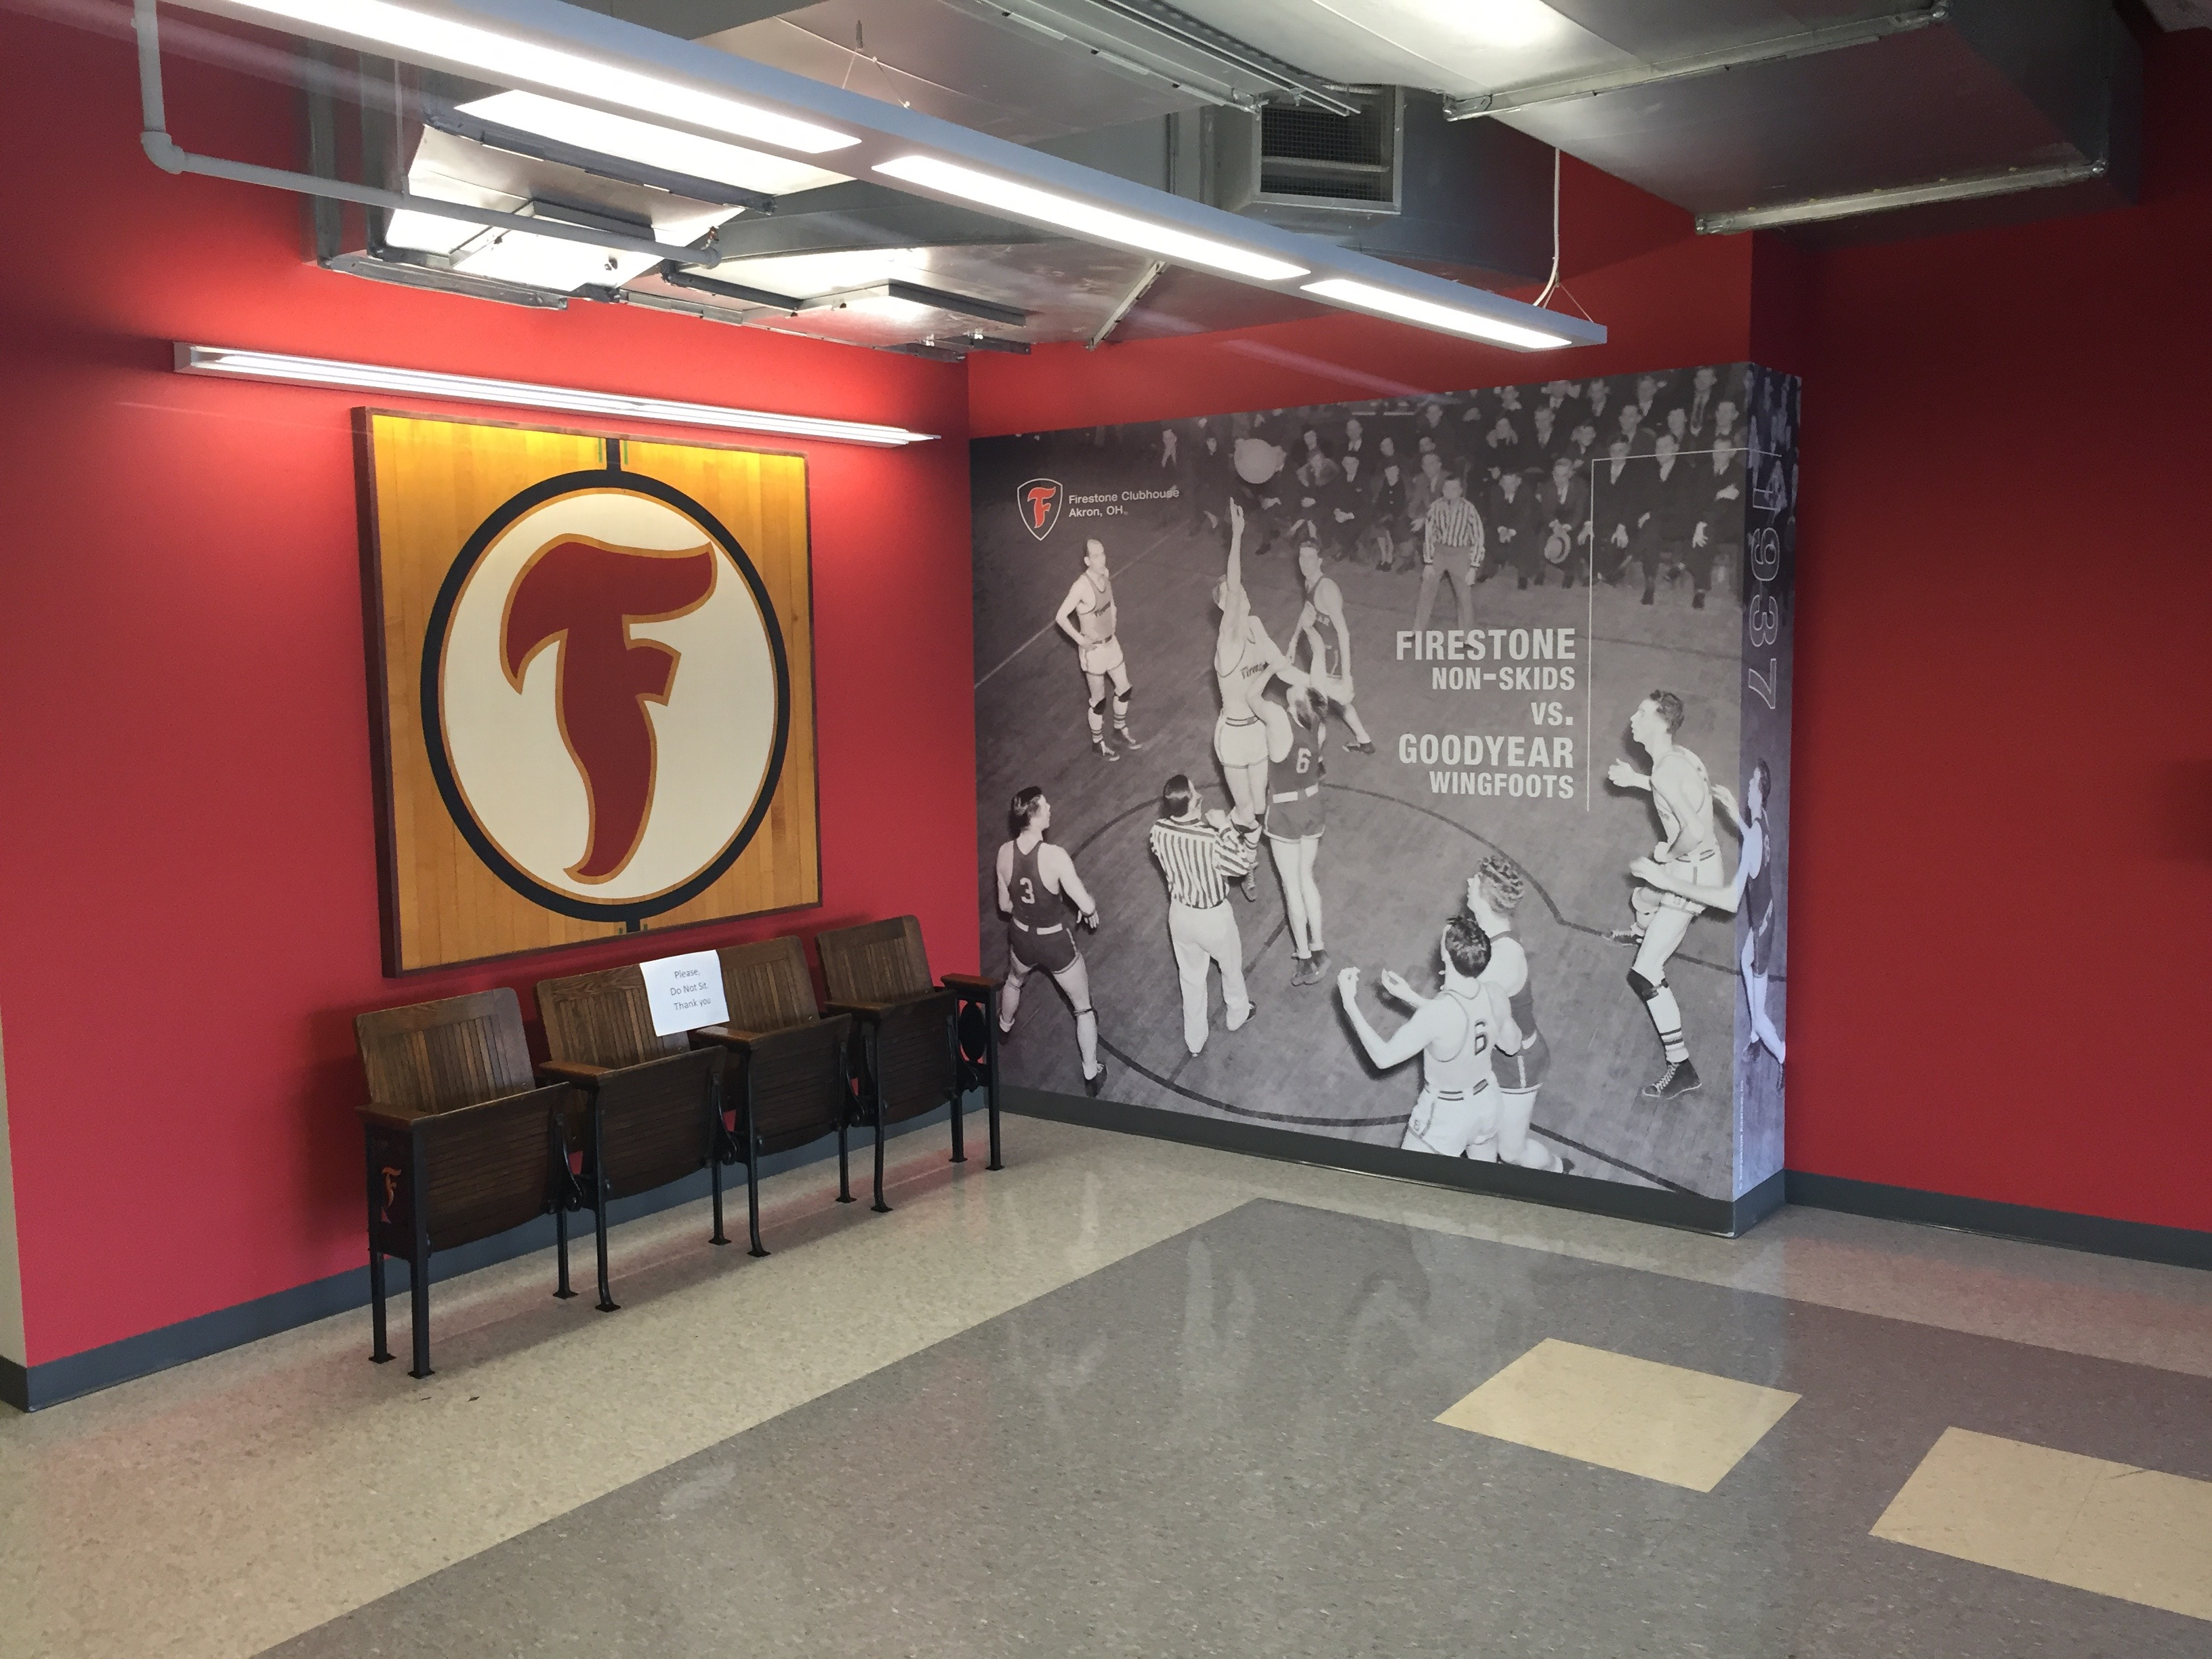 Custom printed wall covering helps tell the story of vintage corporate basketball arena artifacts.